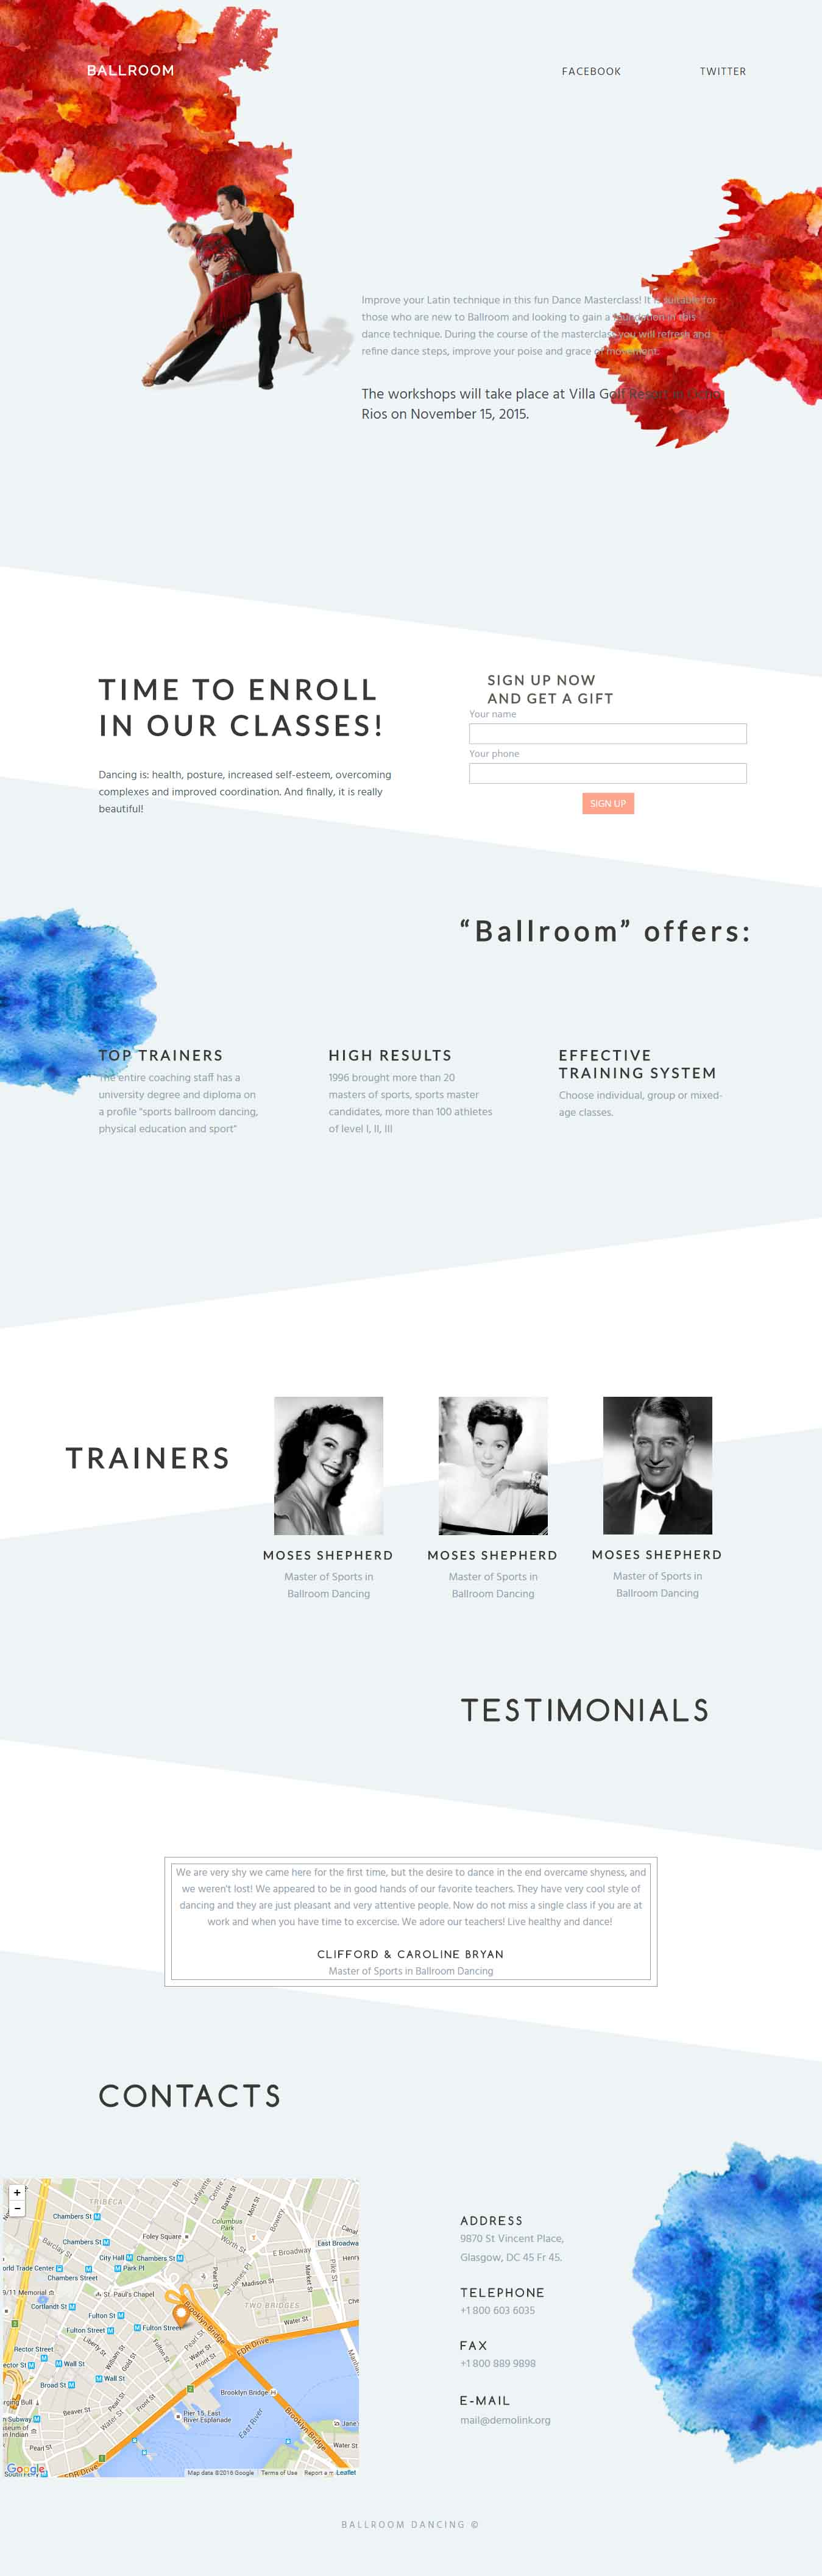 Ball Room Workshop Landing Page Template